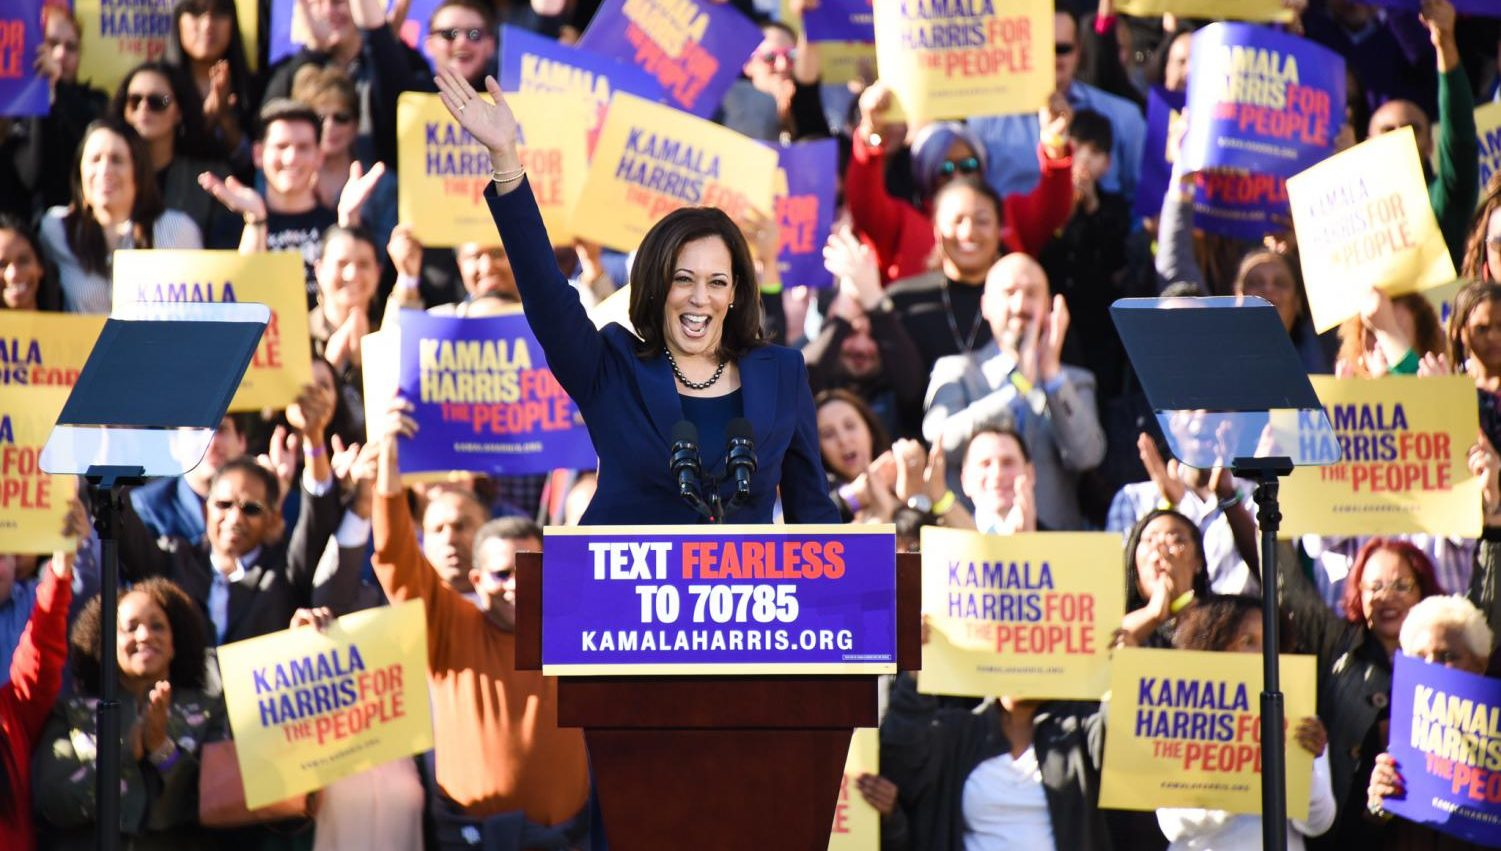 Senator Kamala Harris waves to a crowd in her hometown, Oakland, to officially announce her 2020 presidential bid.